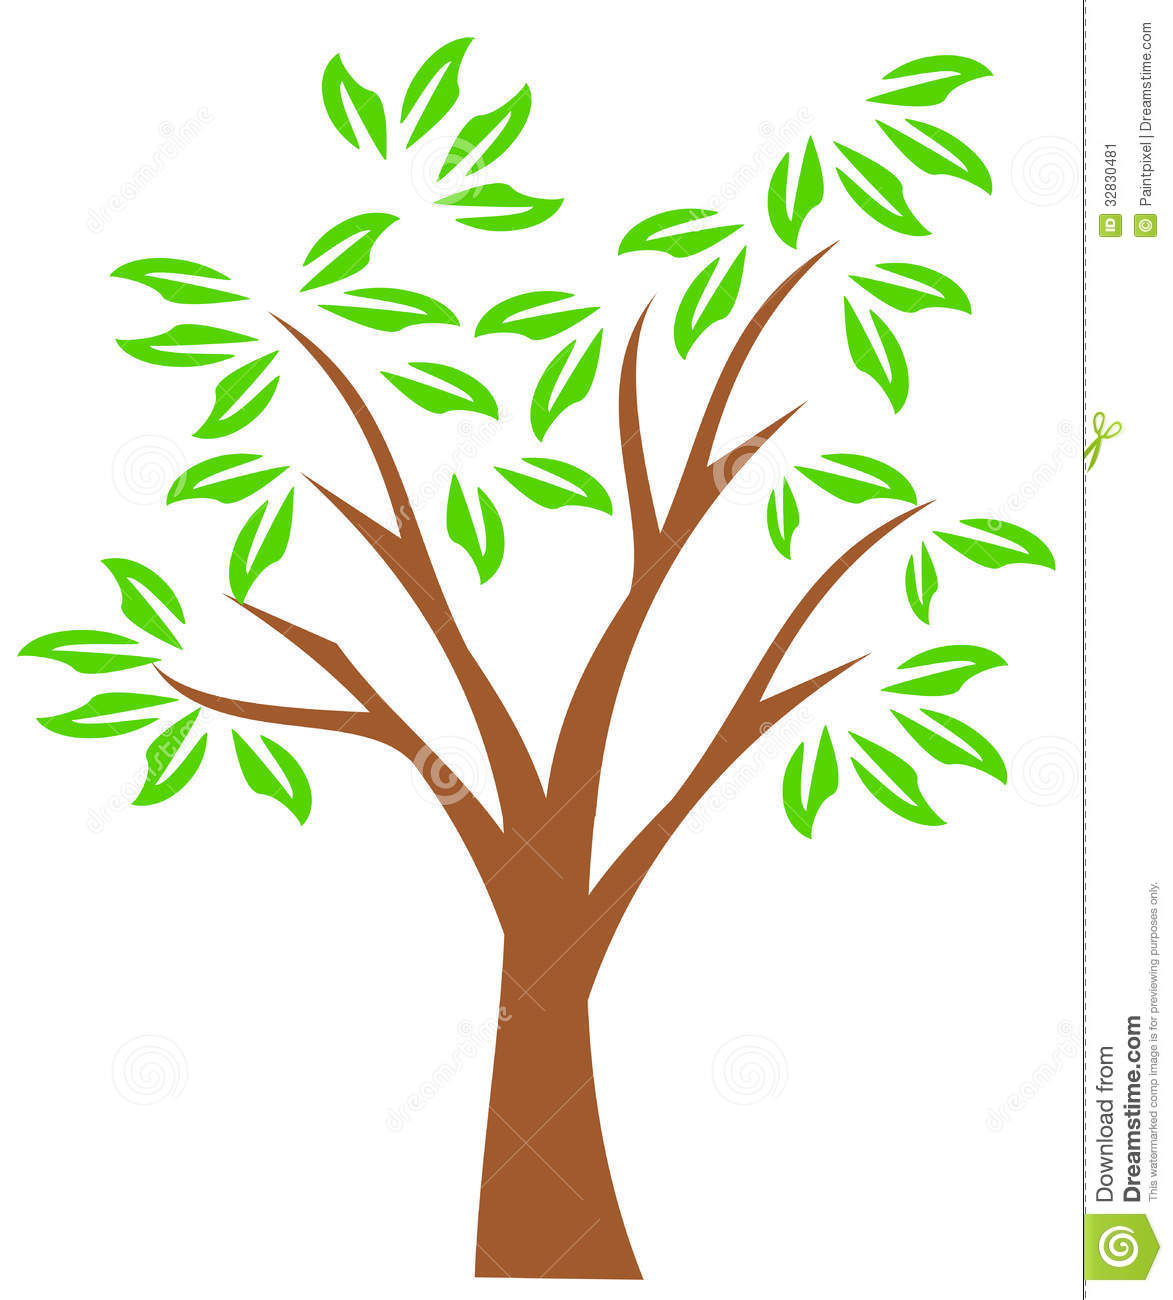 monkey in a tree clipart tree branch clip art spring tree clipart ...